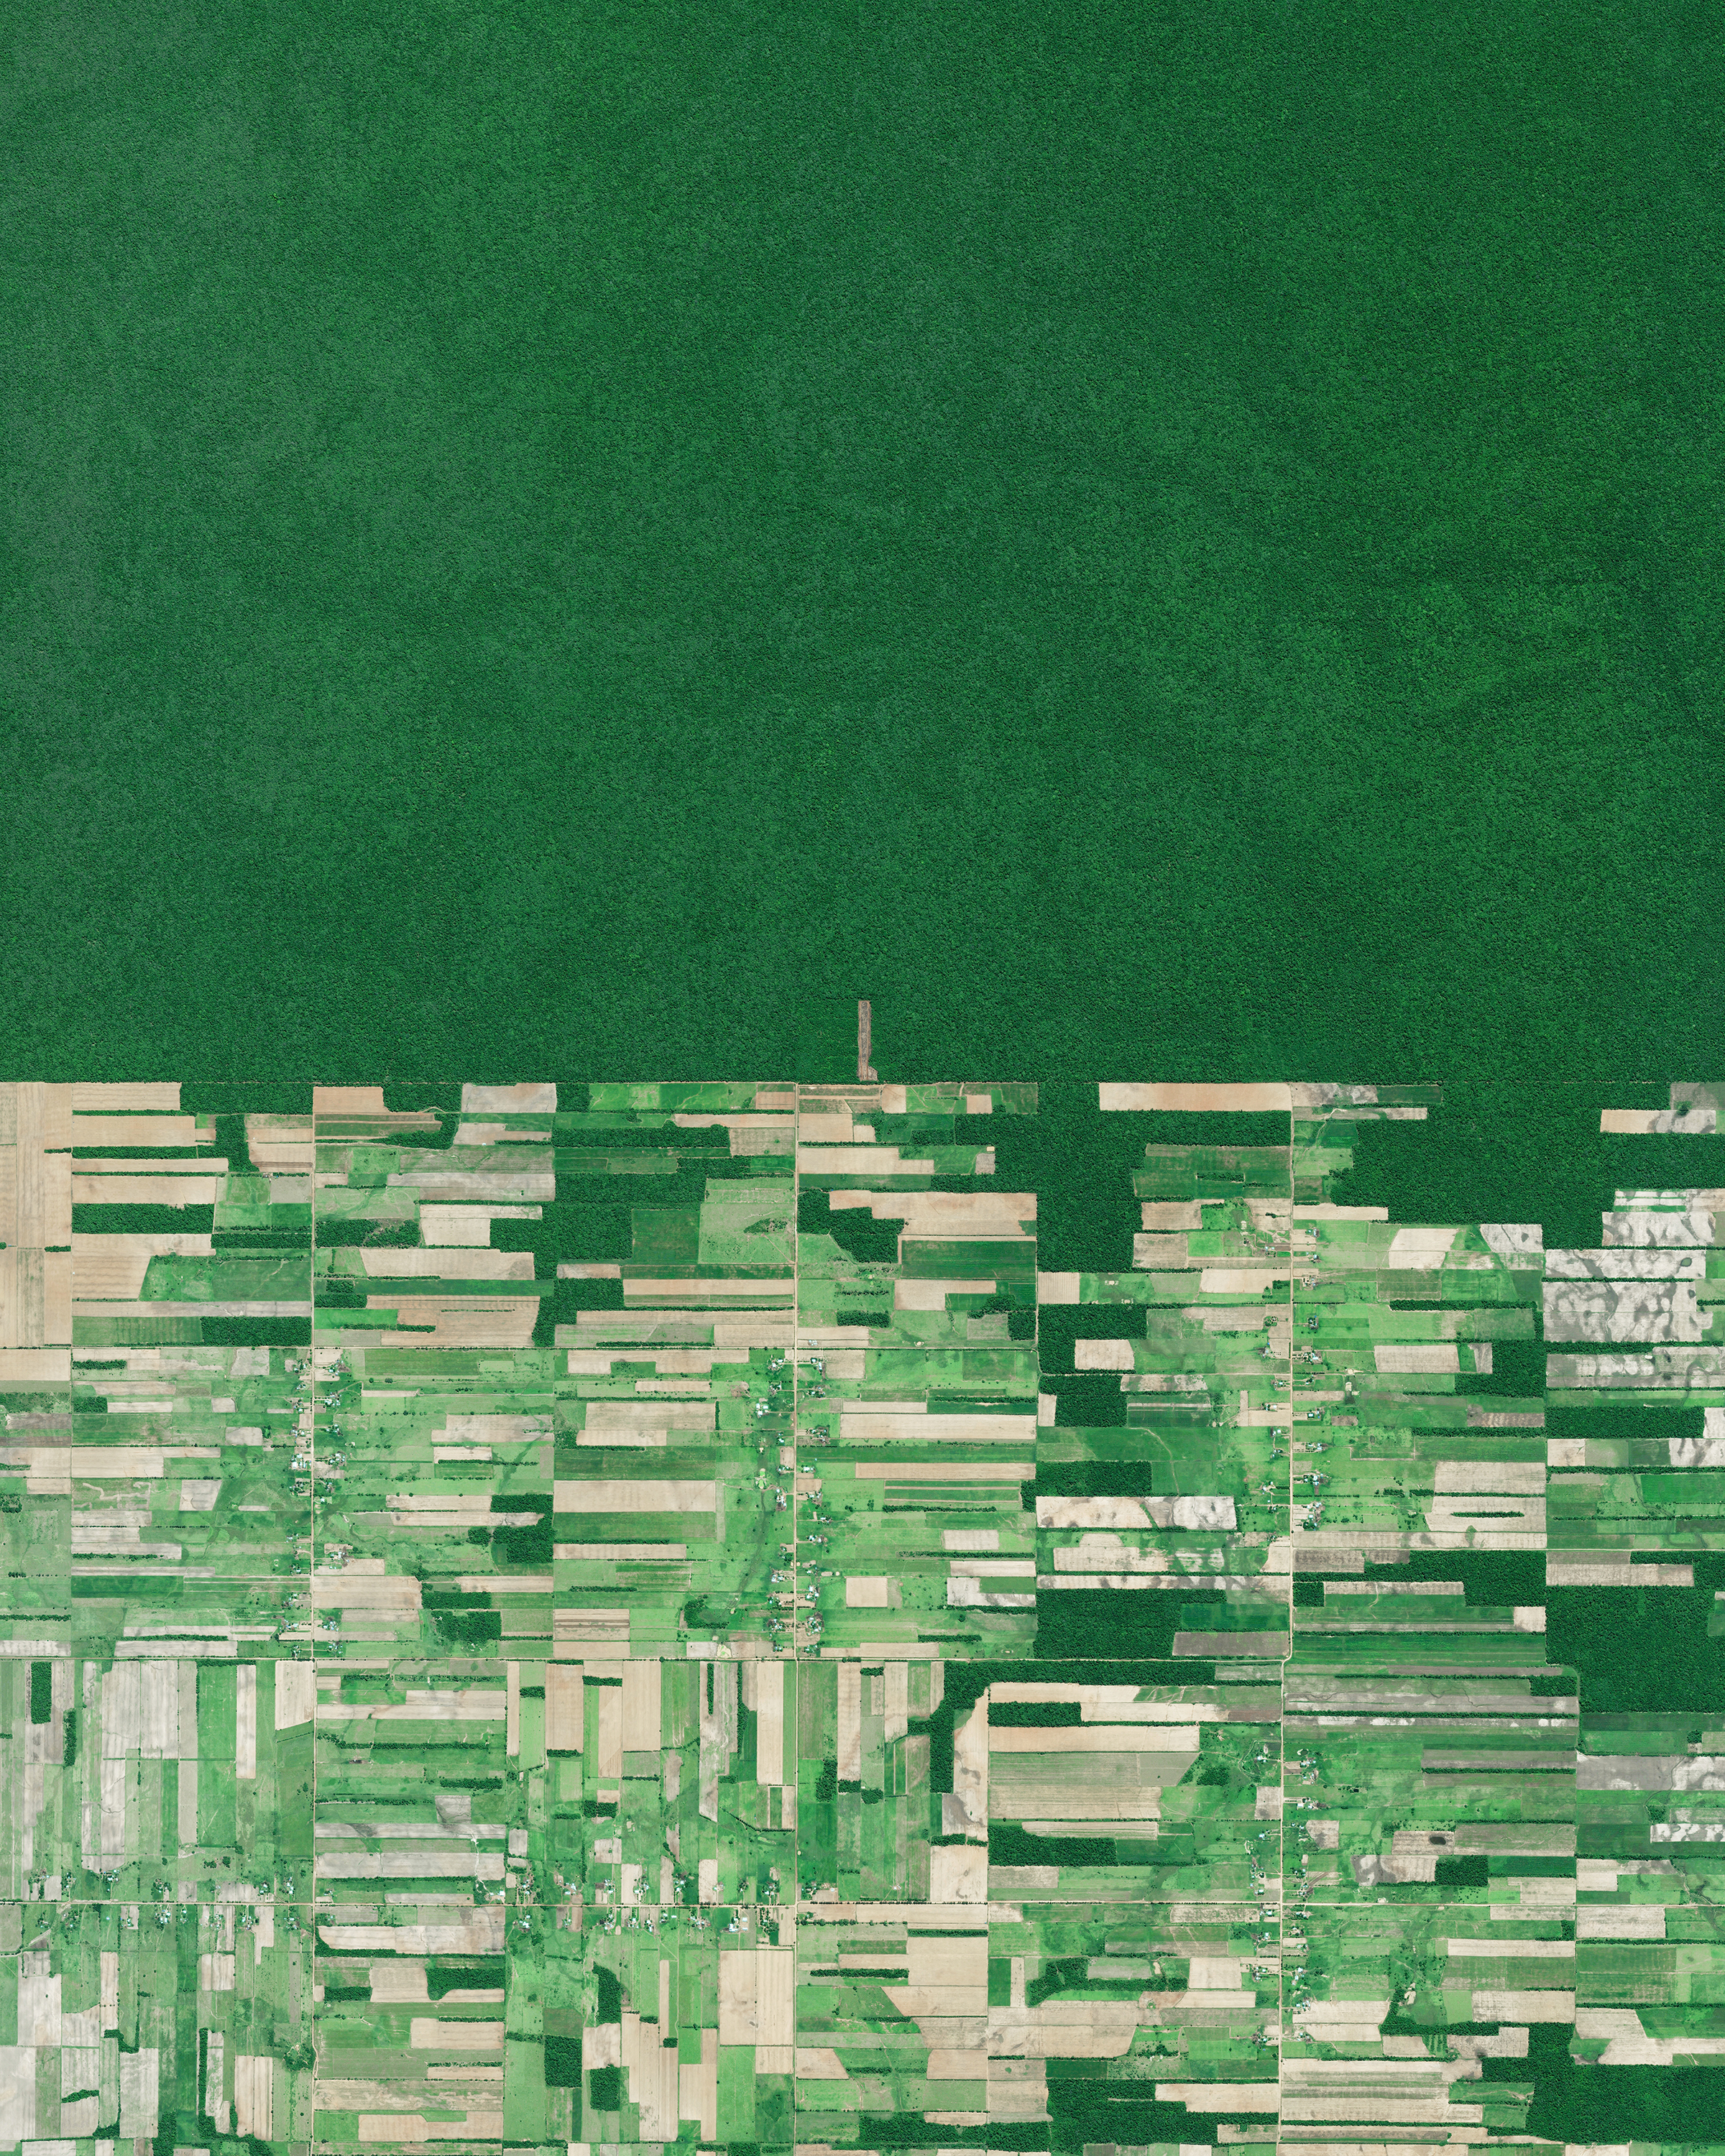 Deforestation of the rainforest is visible in Santa Cruz, Bolivia, immediately adjacent to untouched tracts of forest. Deforestation in the country has primarily been driven by the expansion of mechanized agriculture and cattle ranching. According to  The Economist , initial data for the first half of May showed 17,000 acres (6,880 hectares) of forest had been chopped down in the Amazon, nearly as much as the total for the previous nine months.  -17.387750, -60.562130  Source imagery: Maxar Technologies